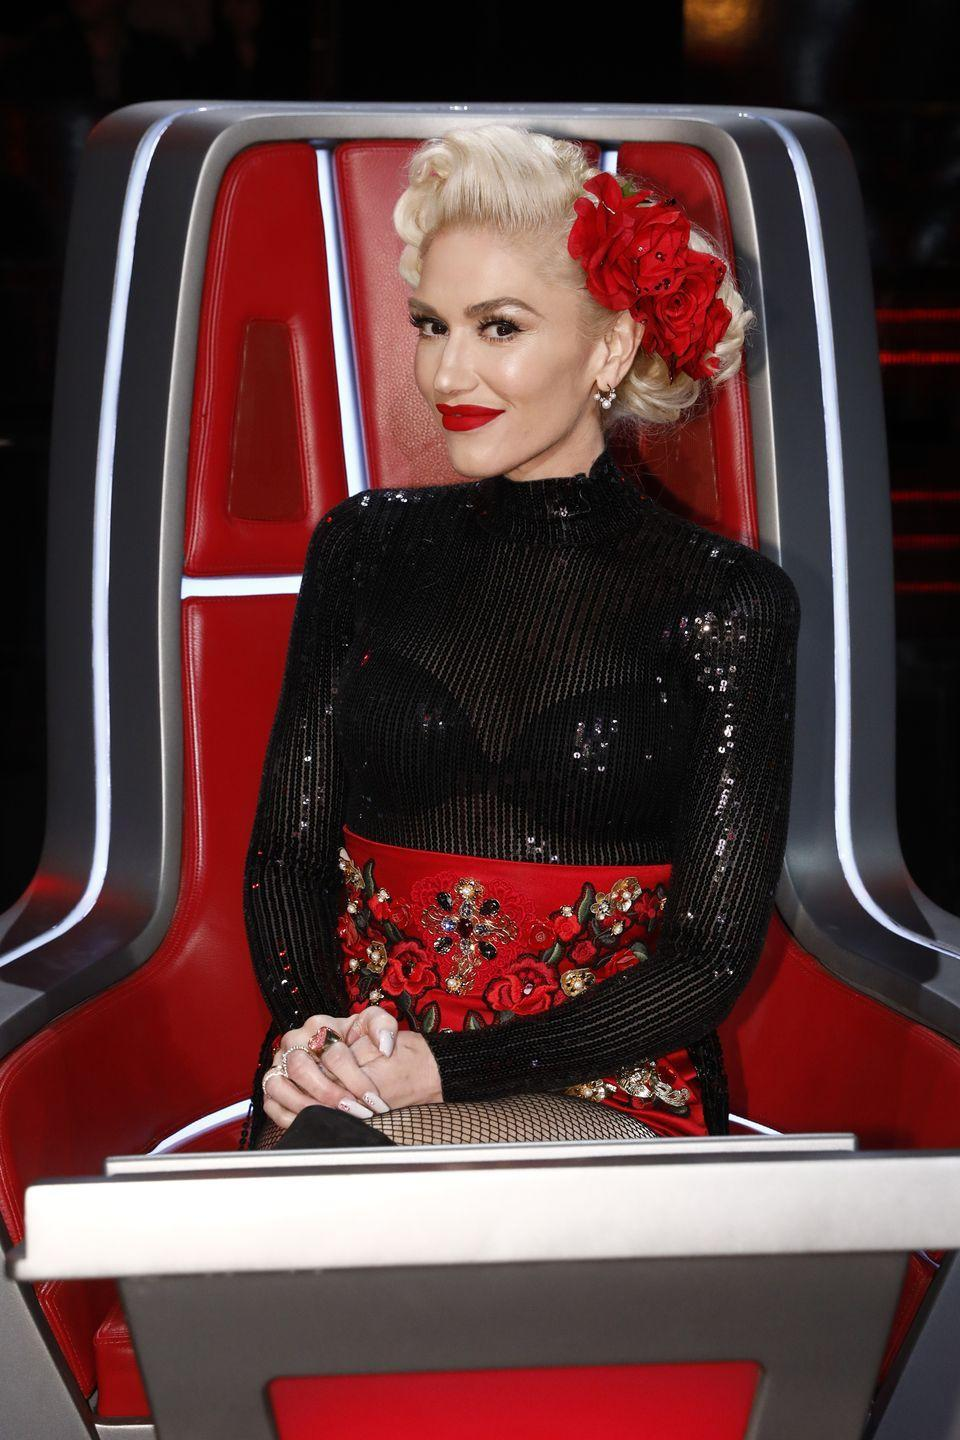 <p>Gwen Stefani was born on October 3rd, way back in 1969. Yes, really! </p><p>Also on this day: <br>Clive Owen <br>Tommy Lee <br>Neve Campbell <br>Lena Headey <br>Ashlee Simpson </p>